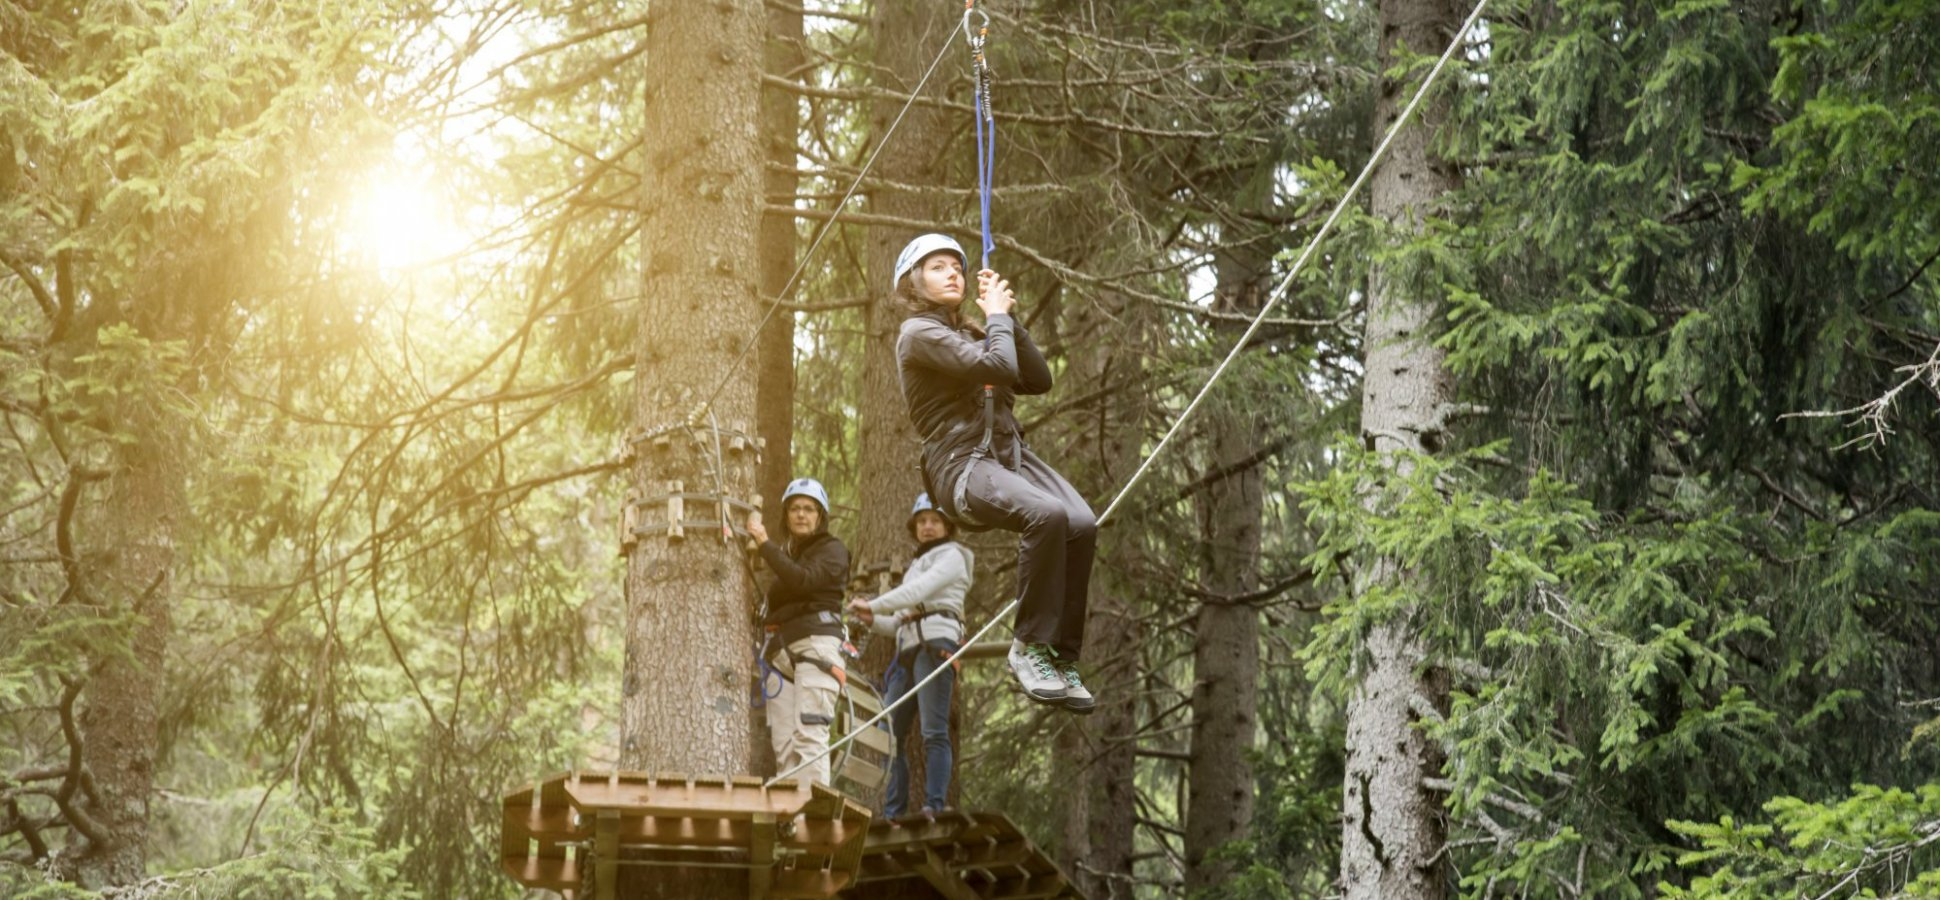 Lessons from a Zip Line Failure